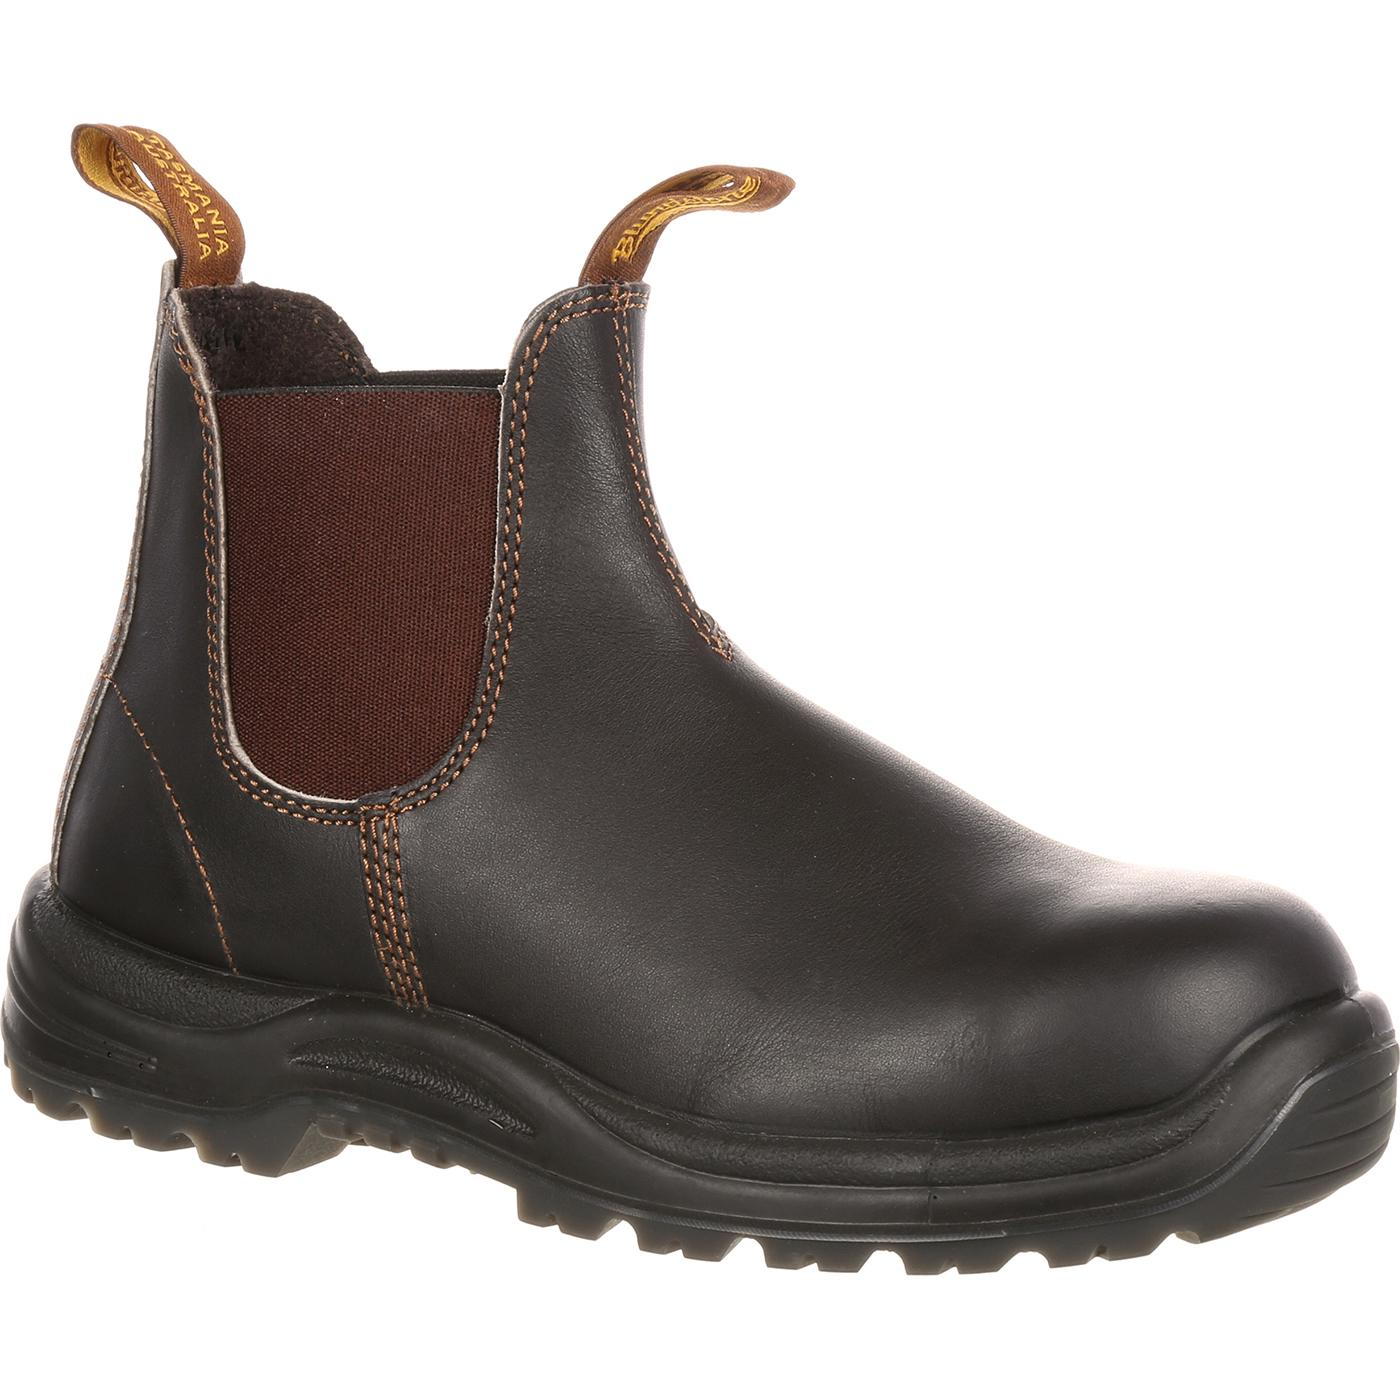 Blundstone Extreme Safety Steel Toe Twin-Gore Slip-On Work Shoe 83c26dbd5310